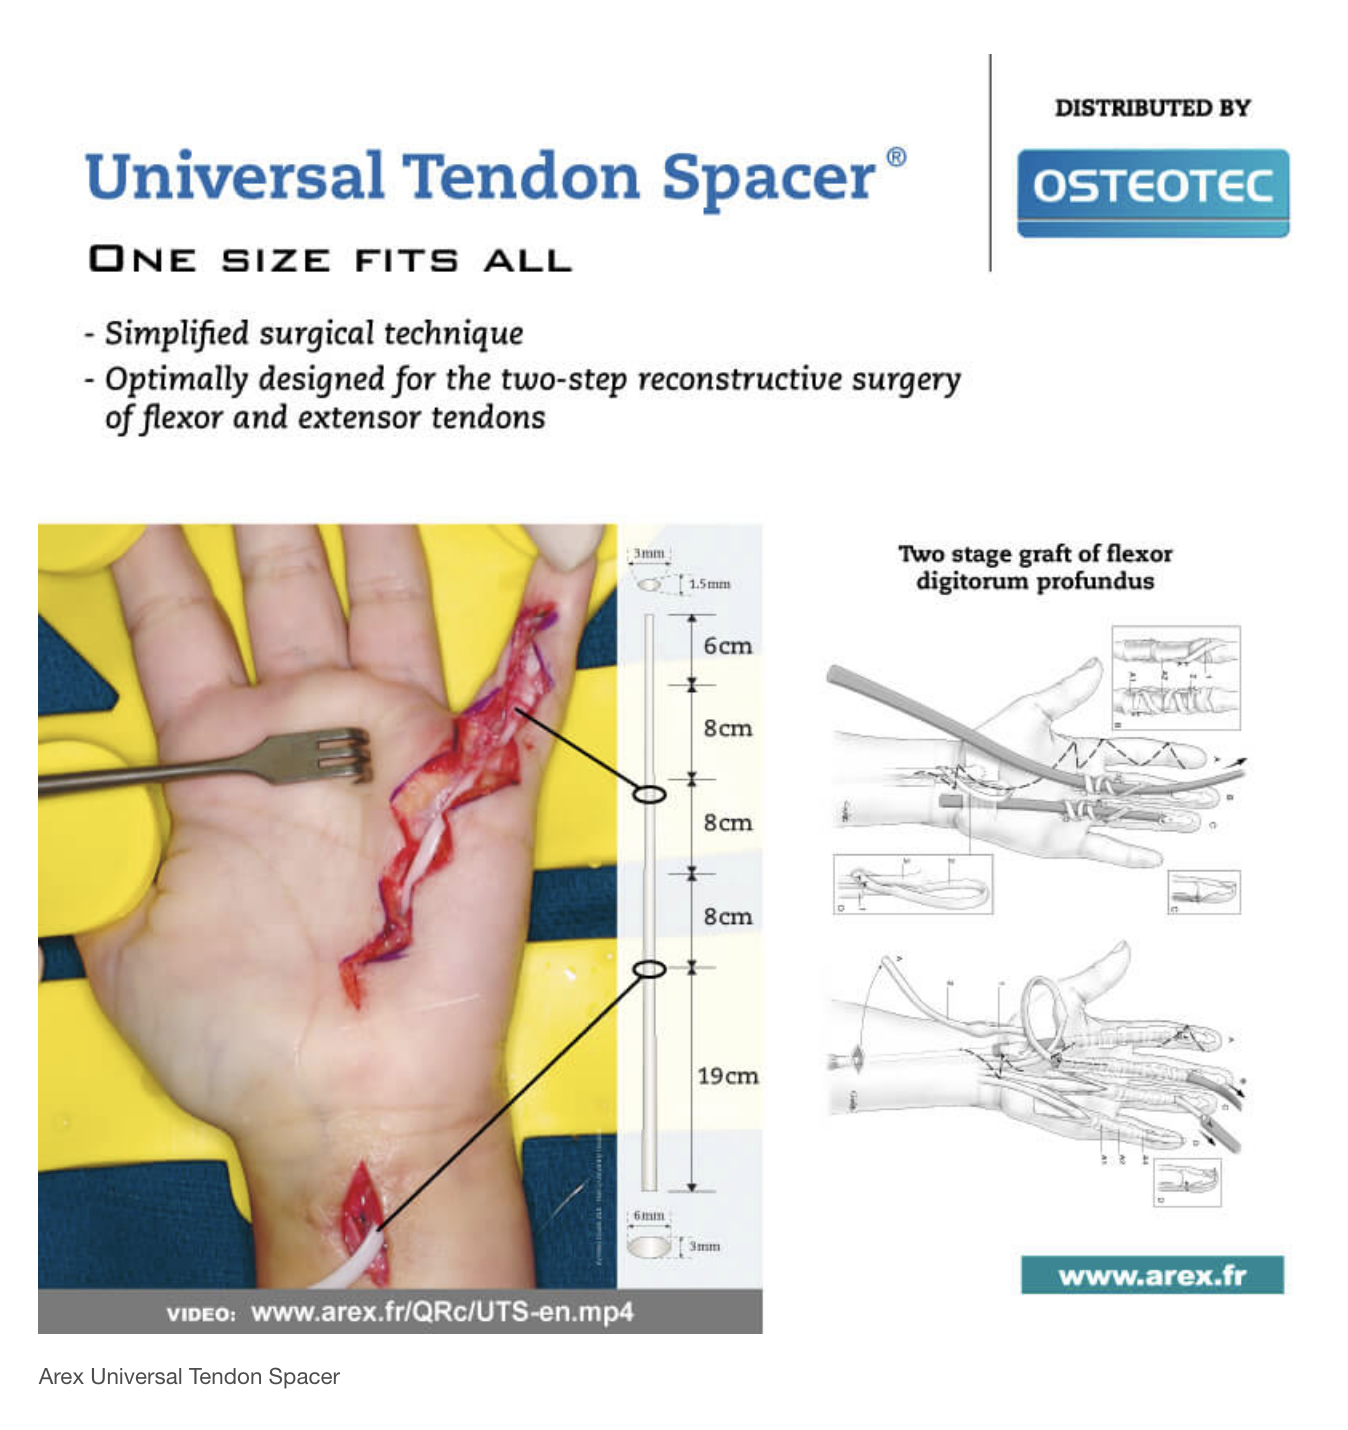 Arex Universal Tendon Spacer